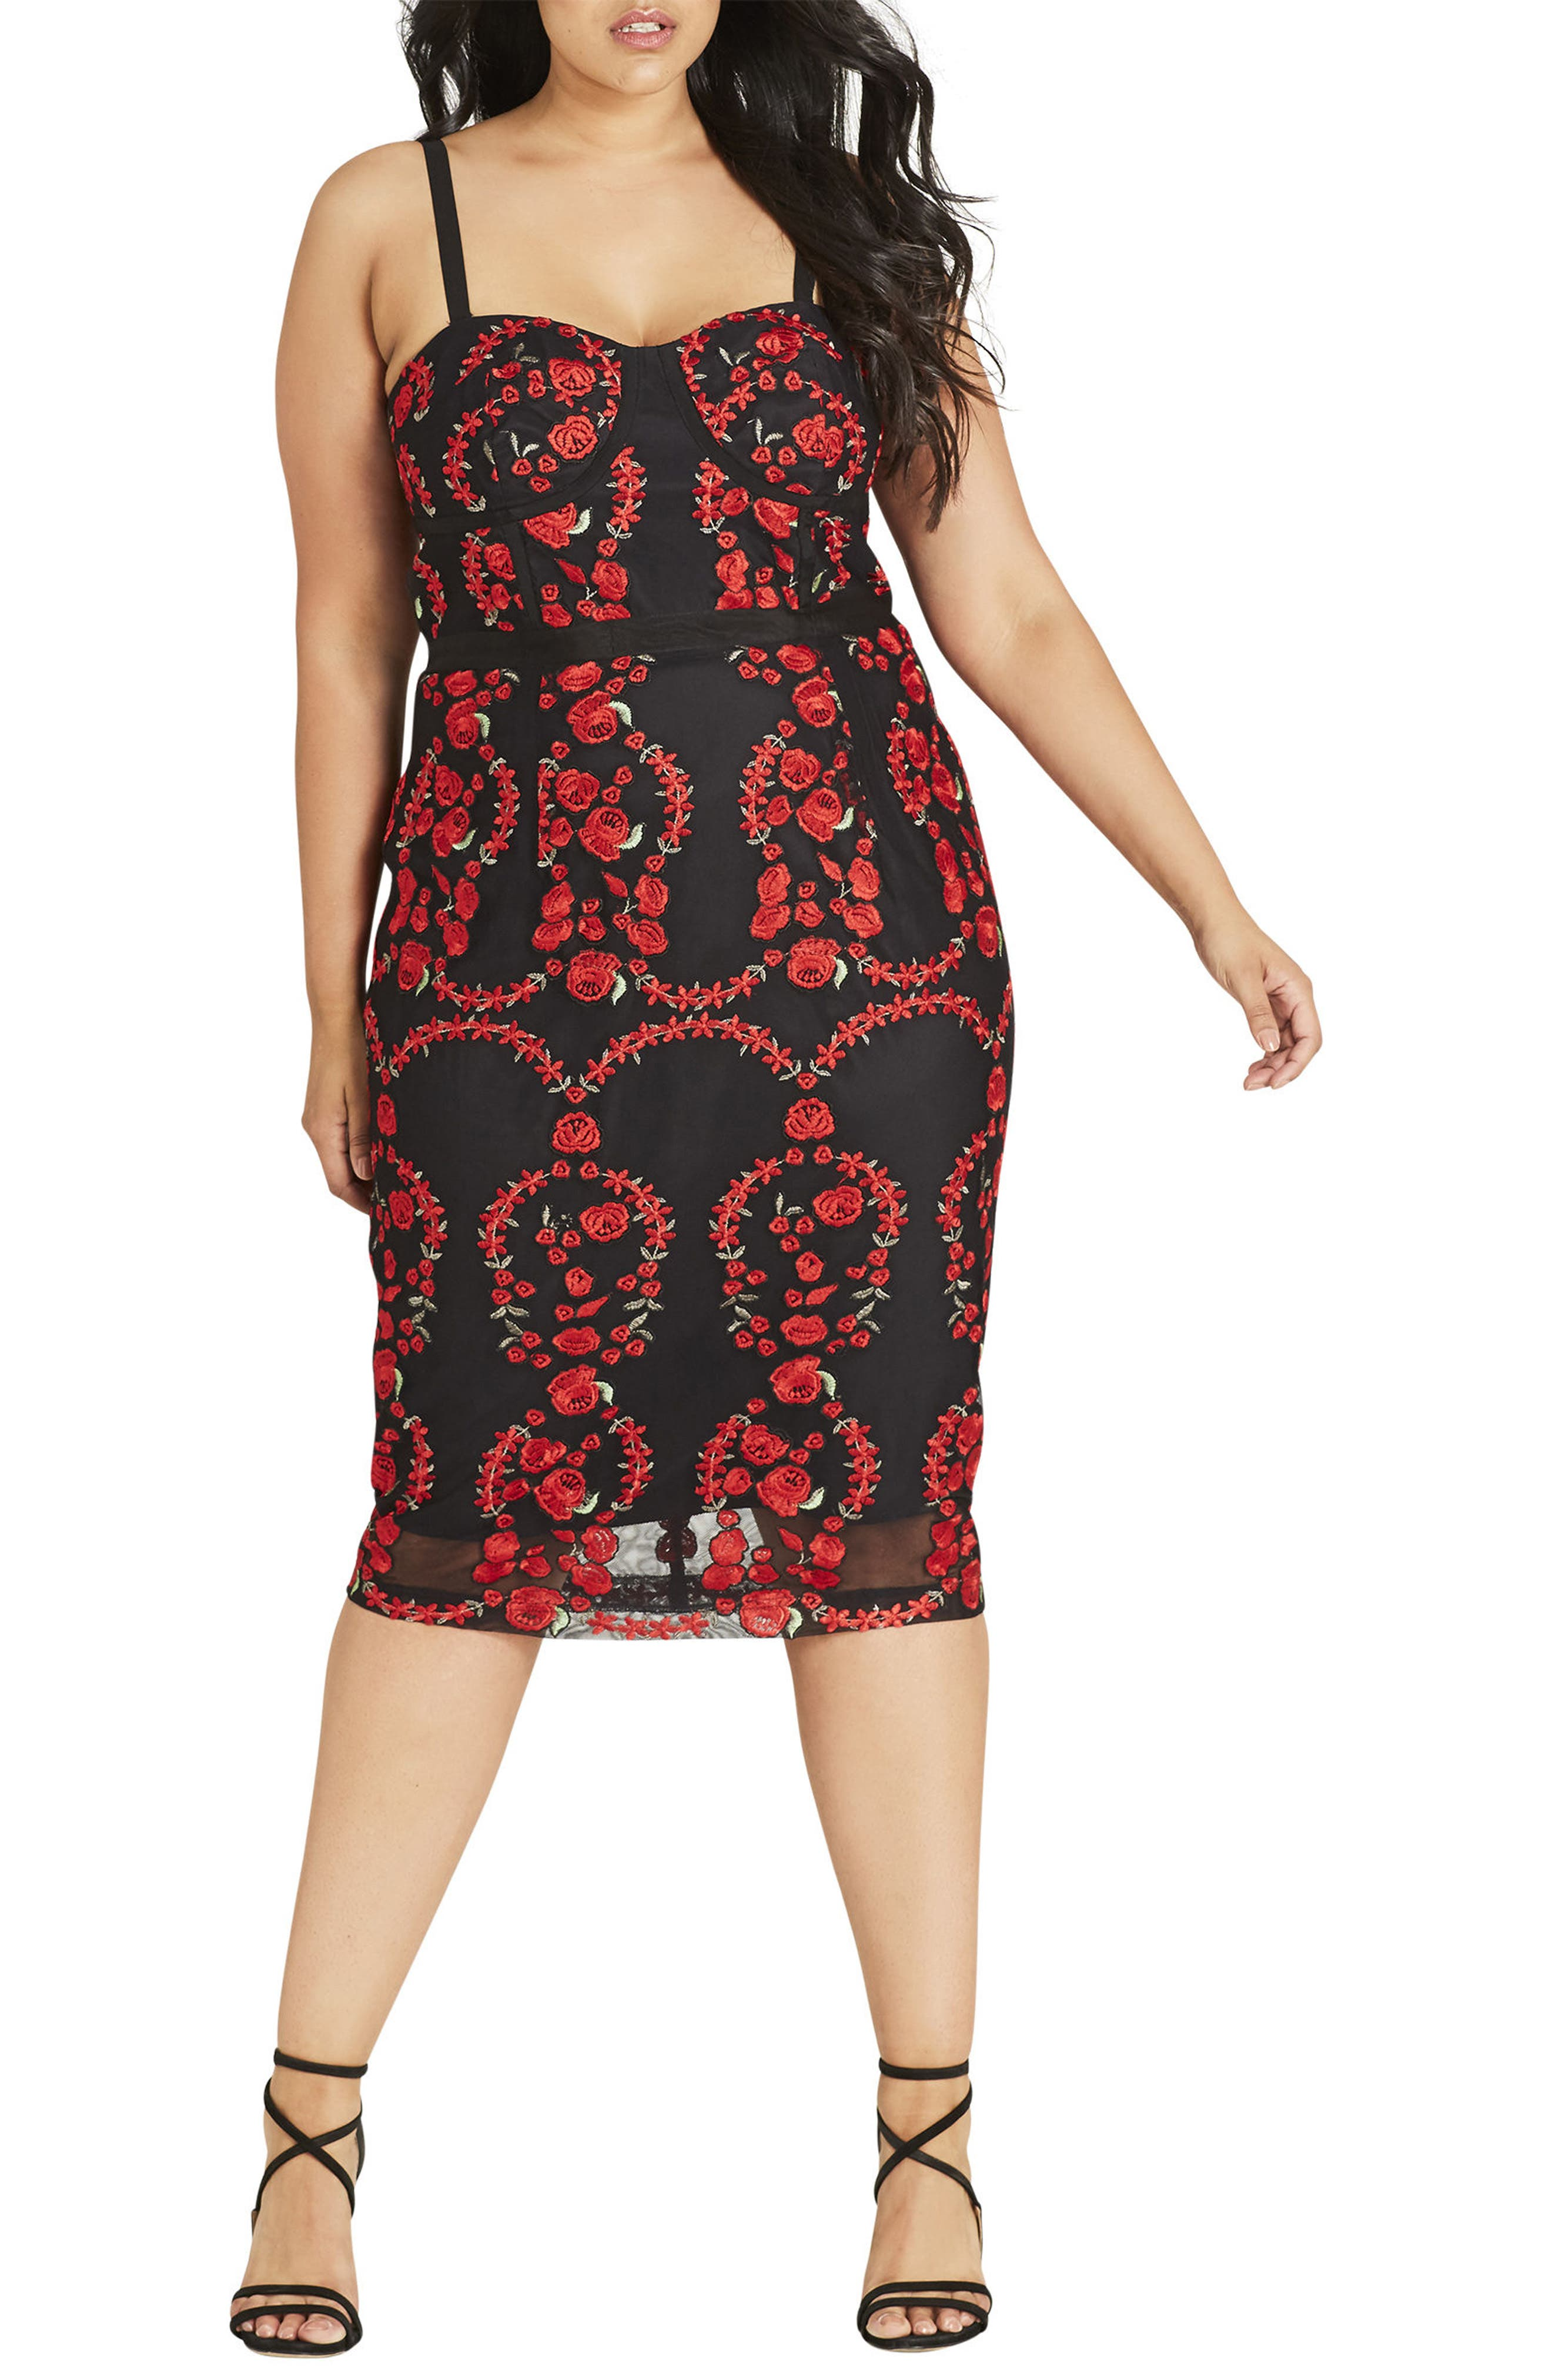 Plus Size City Chic Dolce Rose Embroidered Corset Dress